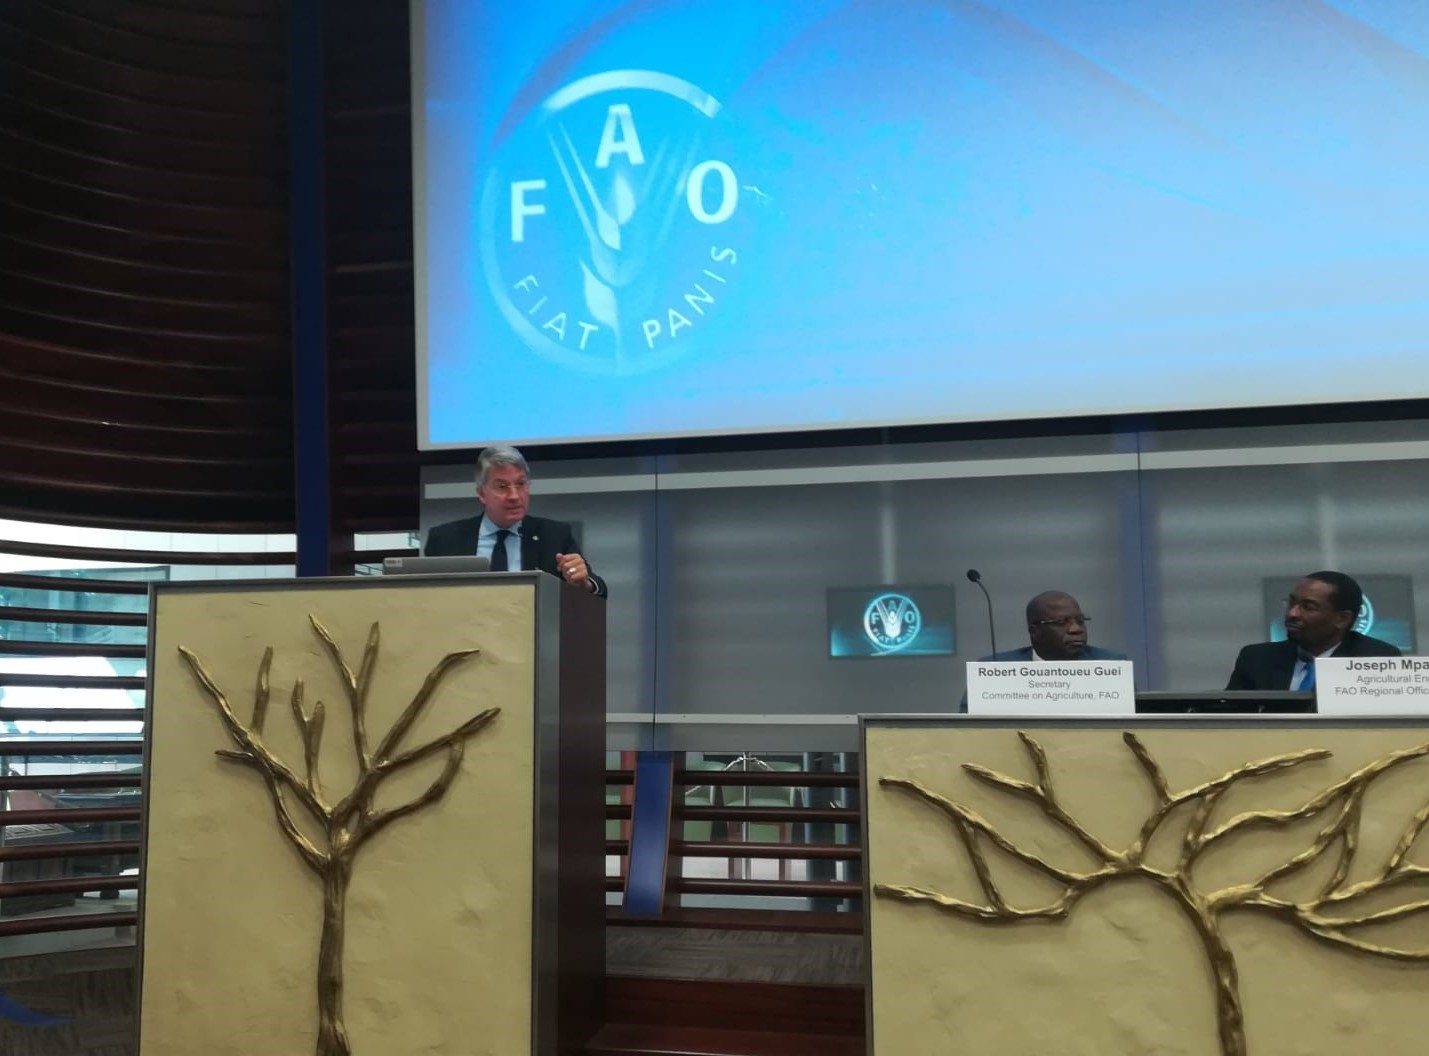 Marco Pezzini at FAO COAG26 cropped